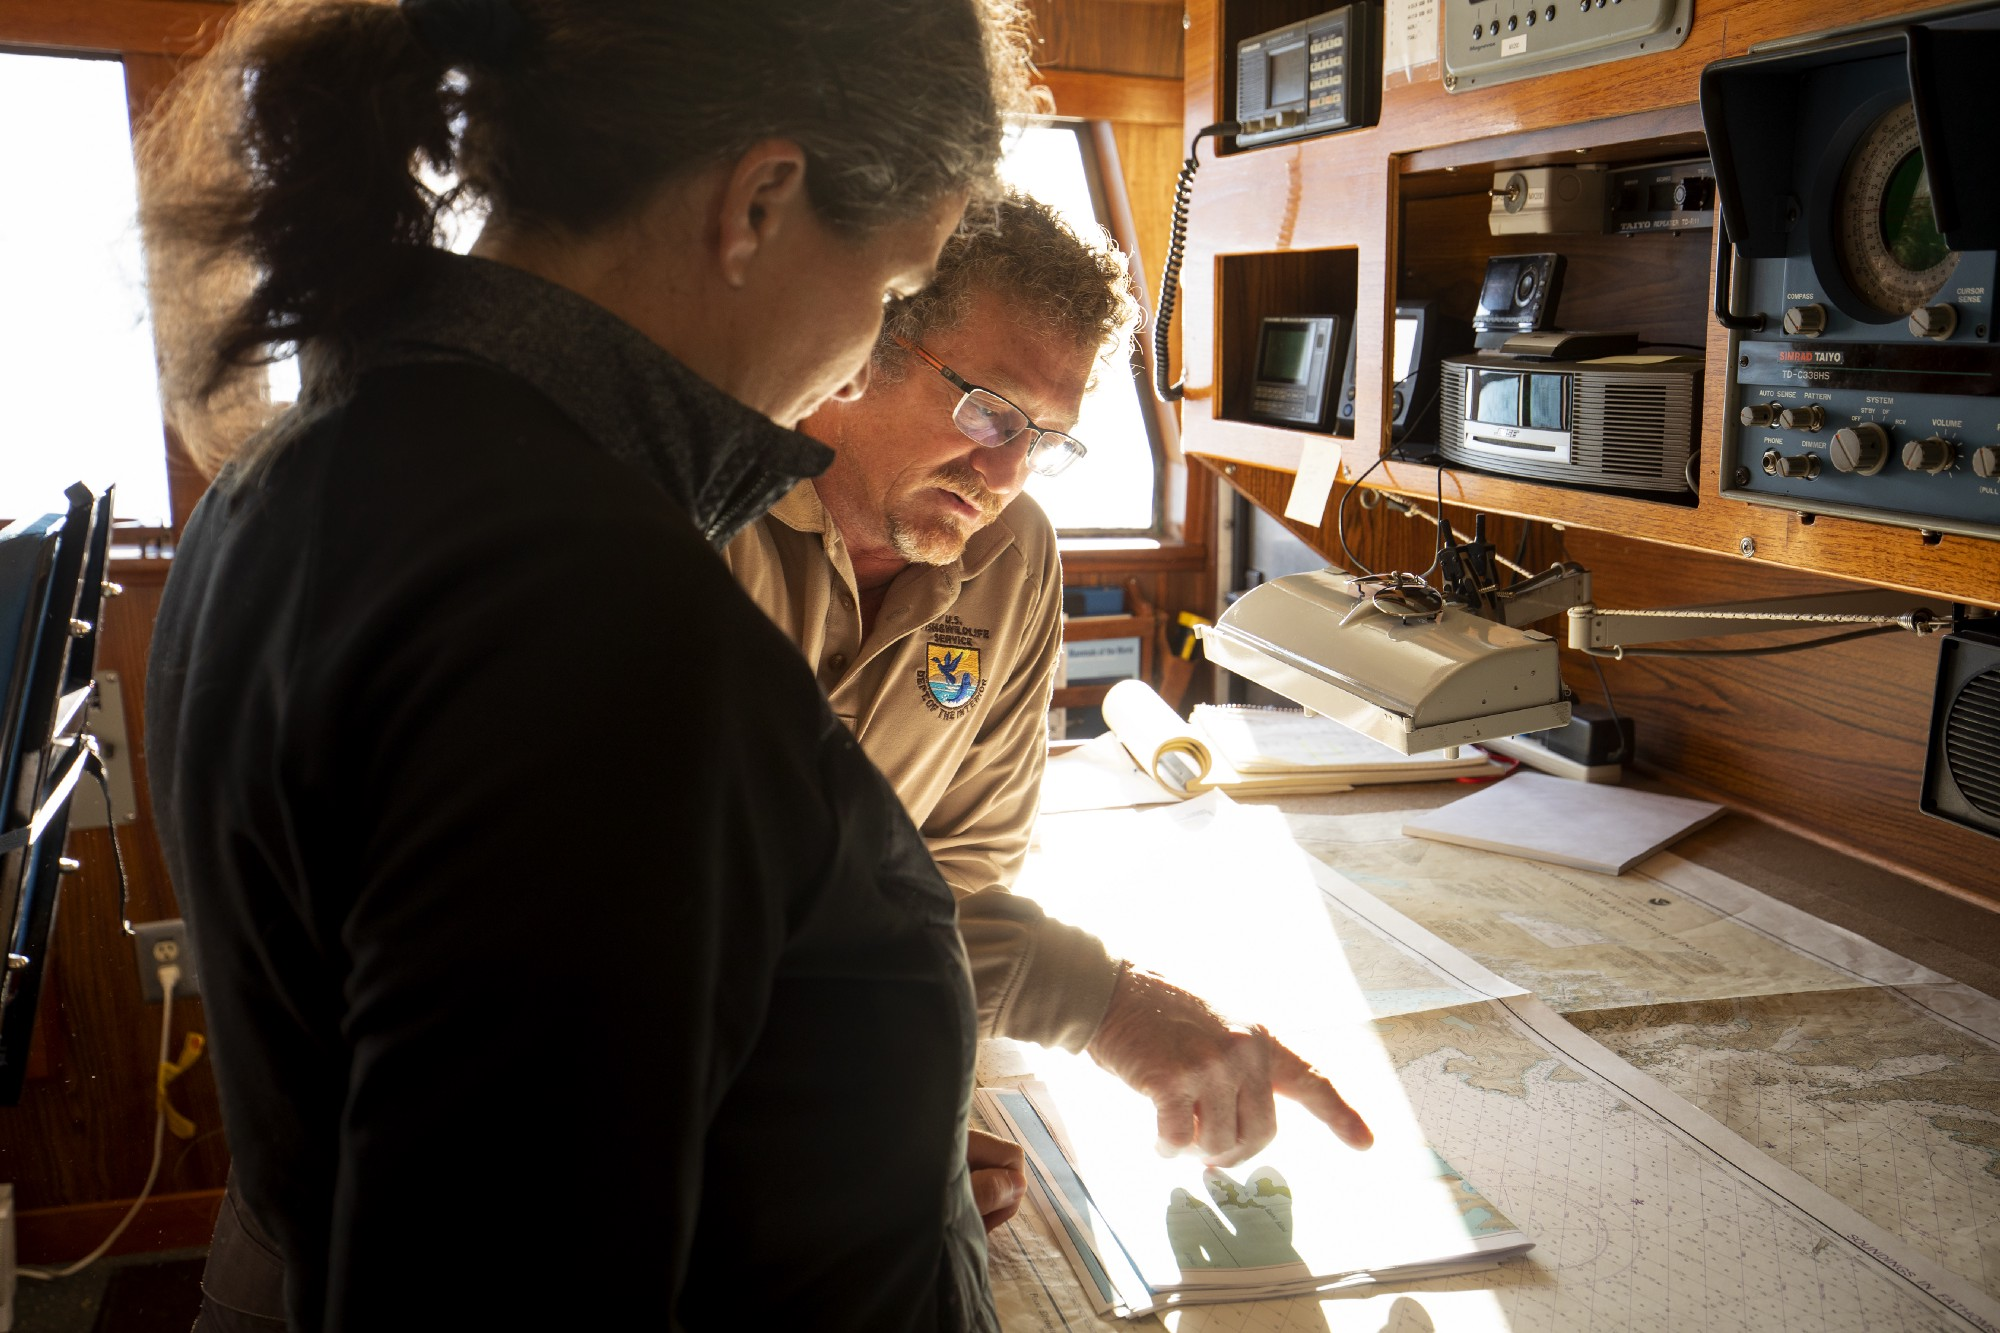 A man in brown uniform with USFWS logo and a woman in black jacket look at a maritime chart set out on a table in a ship's wheelhouse.